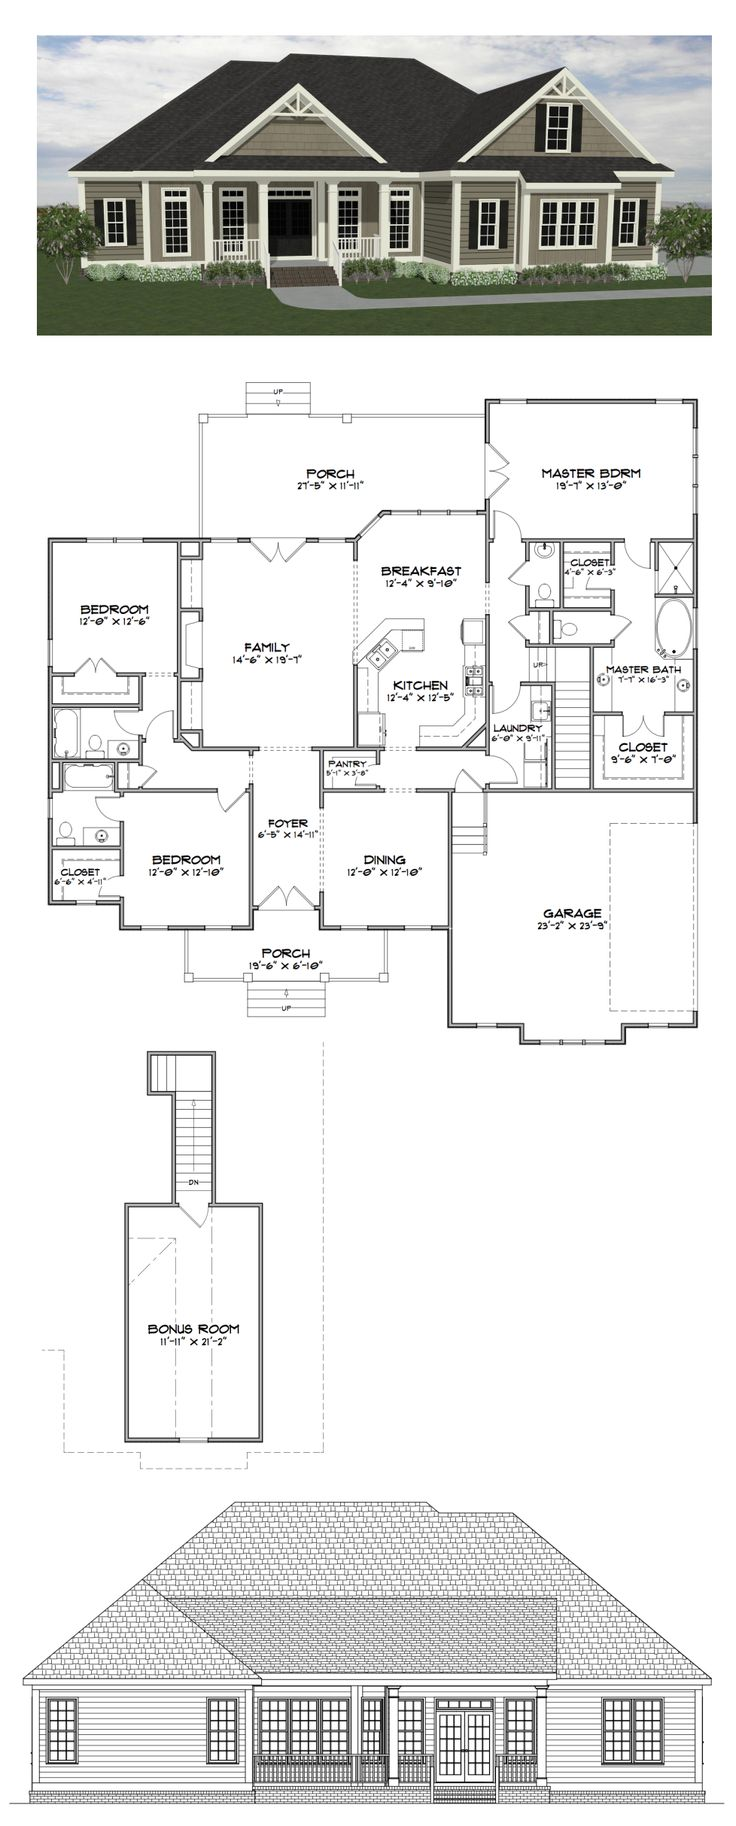 Plan Sc2282: ($770) 3 Bedroom 35 Bath Home With 2282 Heated